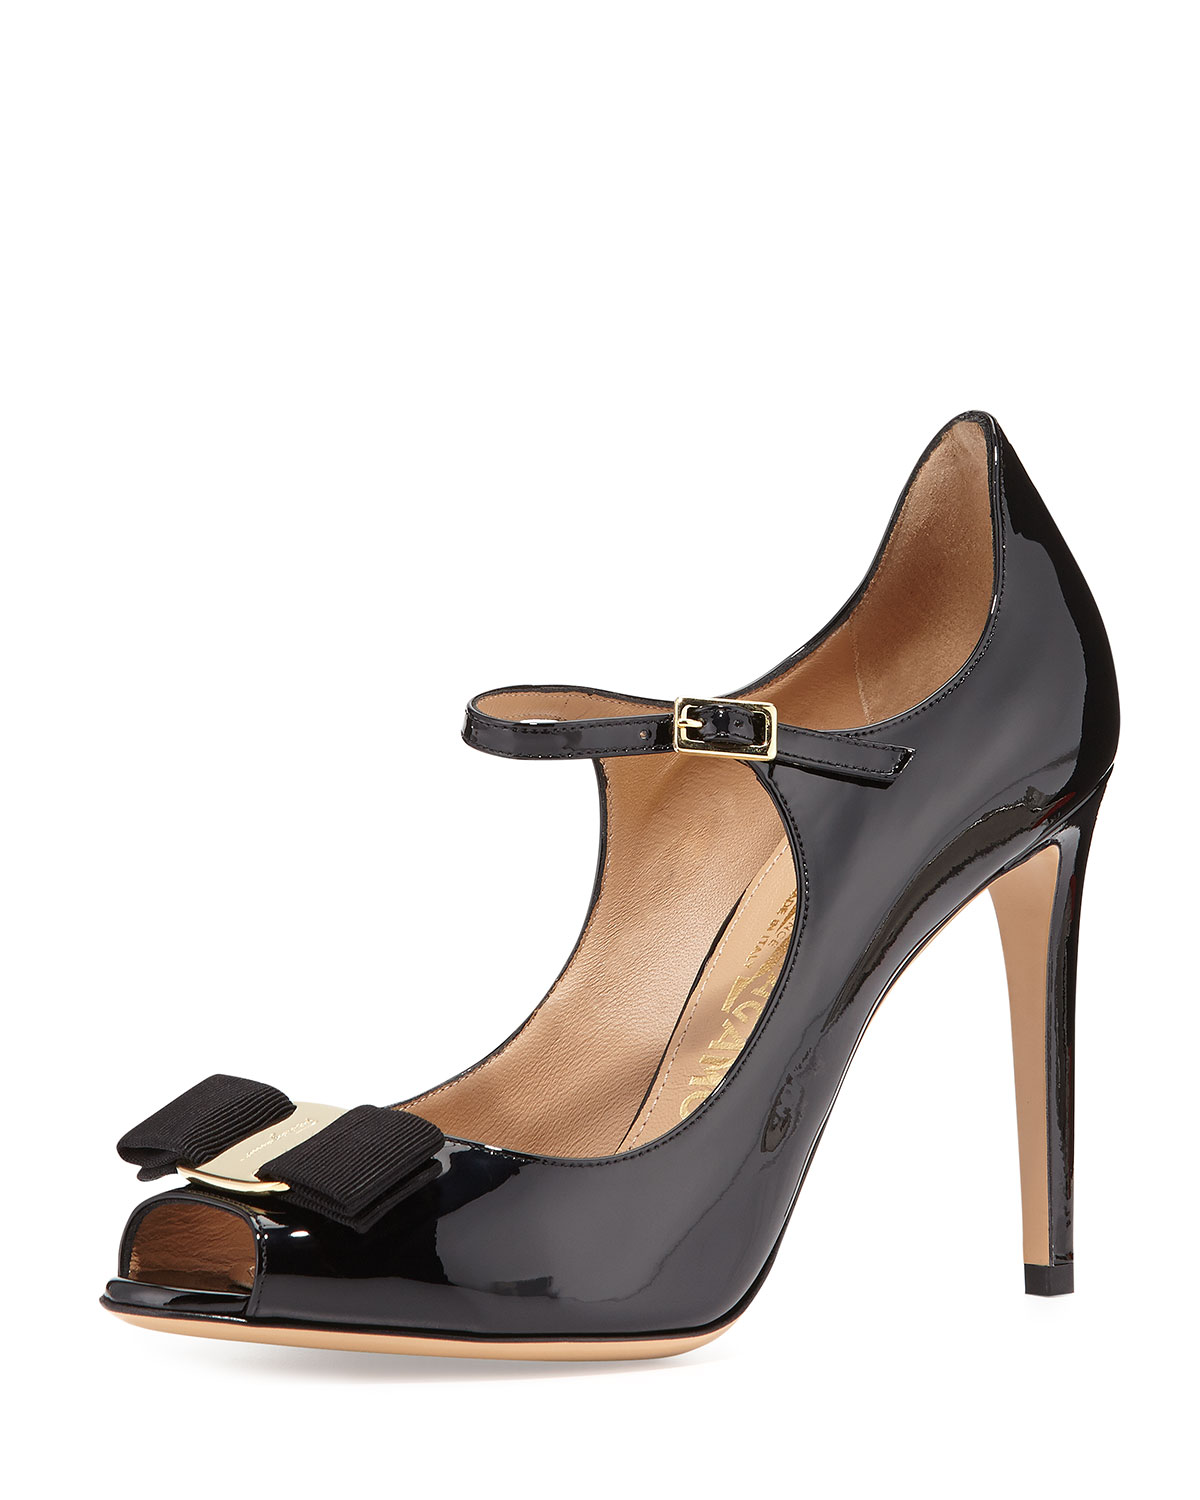 911402c4dd74b Mood Patent Mary Jane Bow Pump, Nero